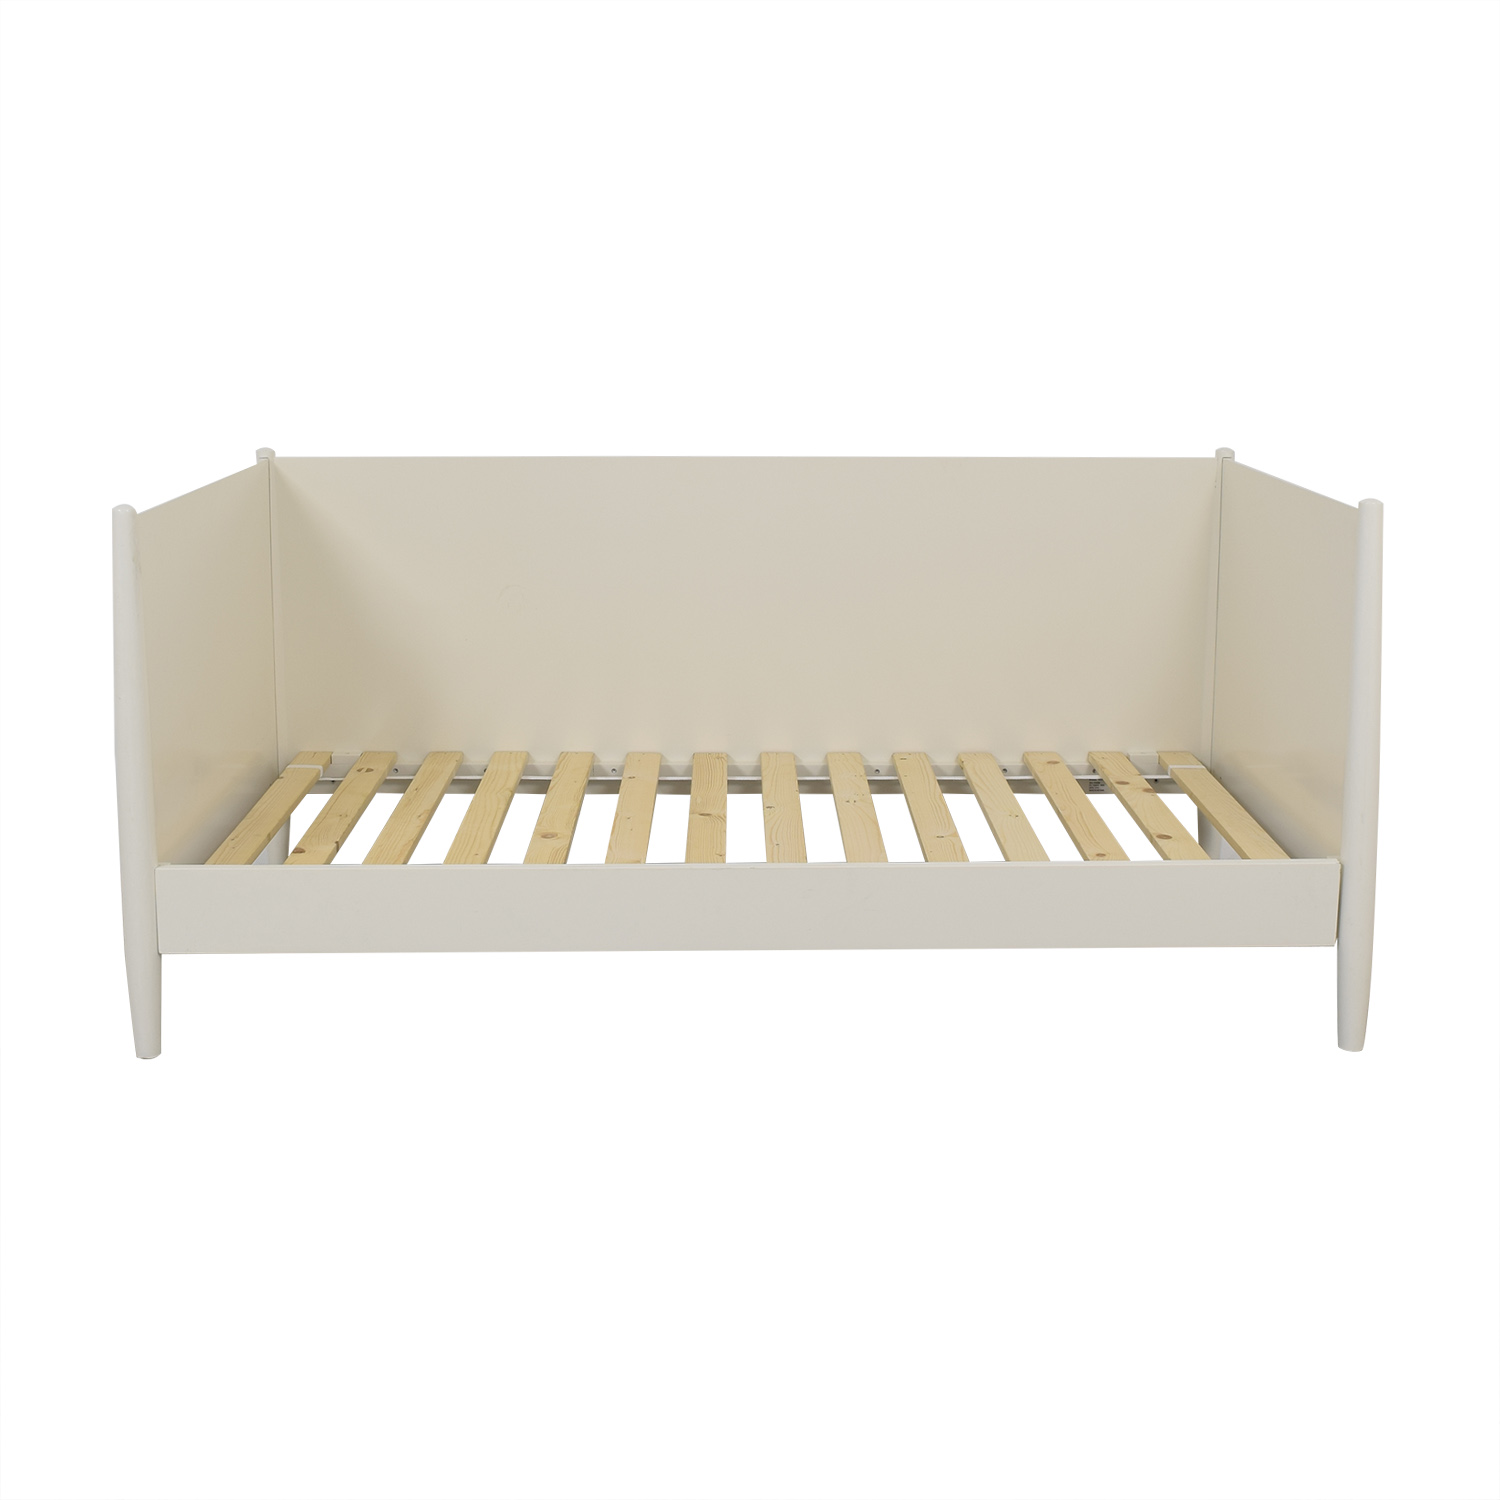 West Elm West Elm Mid Century Daybed Beds